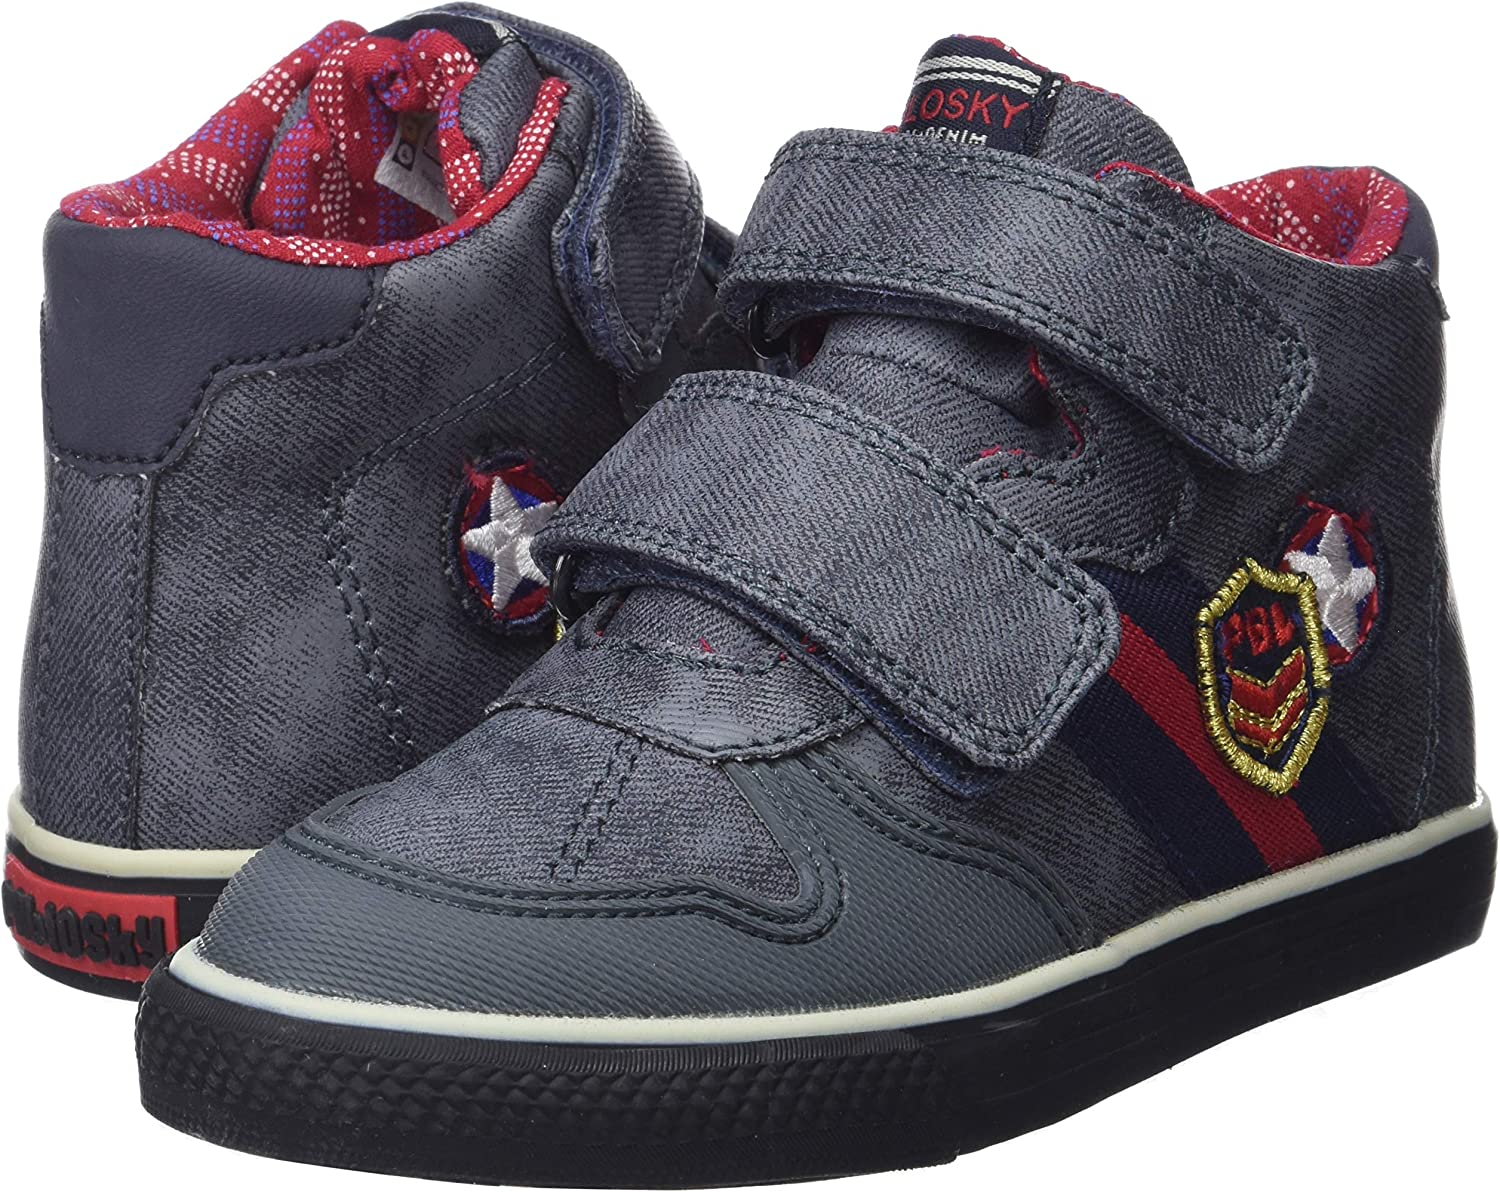 Pablosky Boys 952340 Low-Top Sneakers